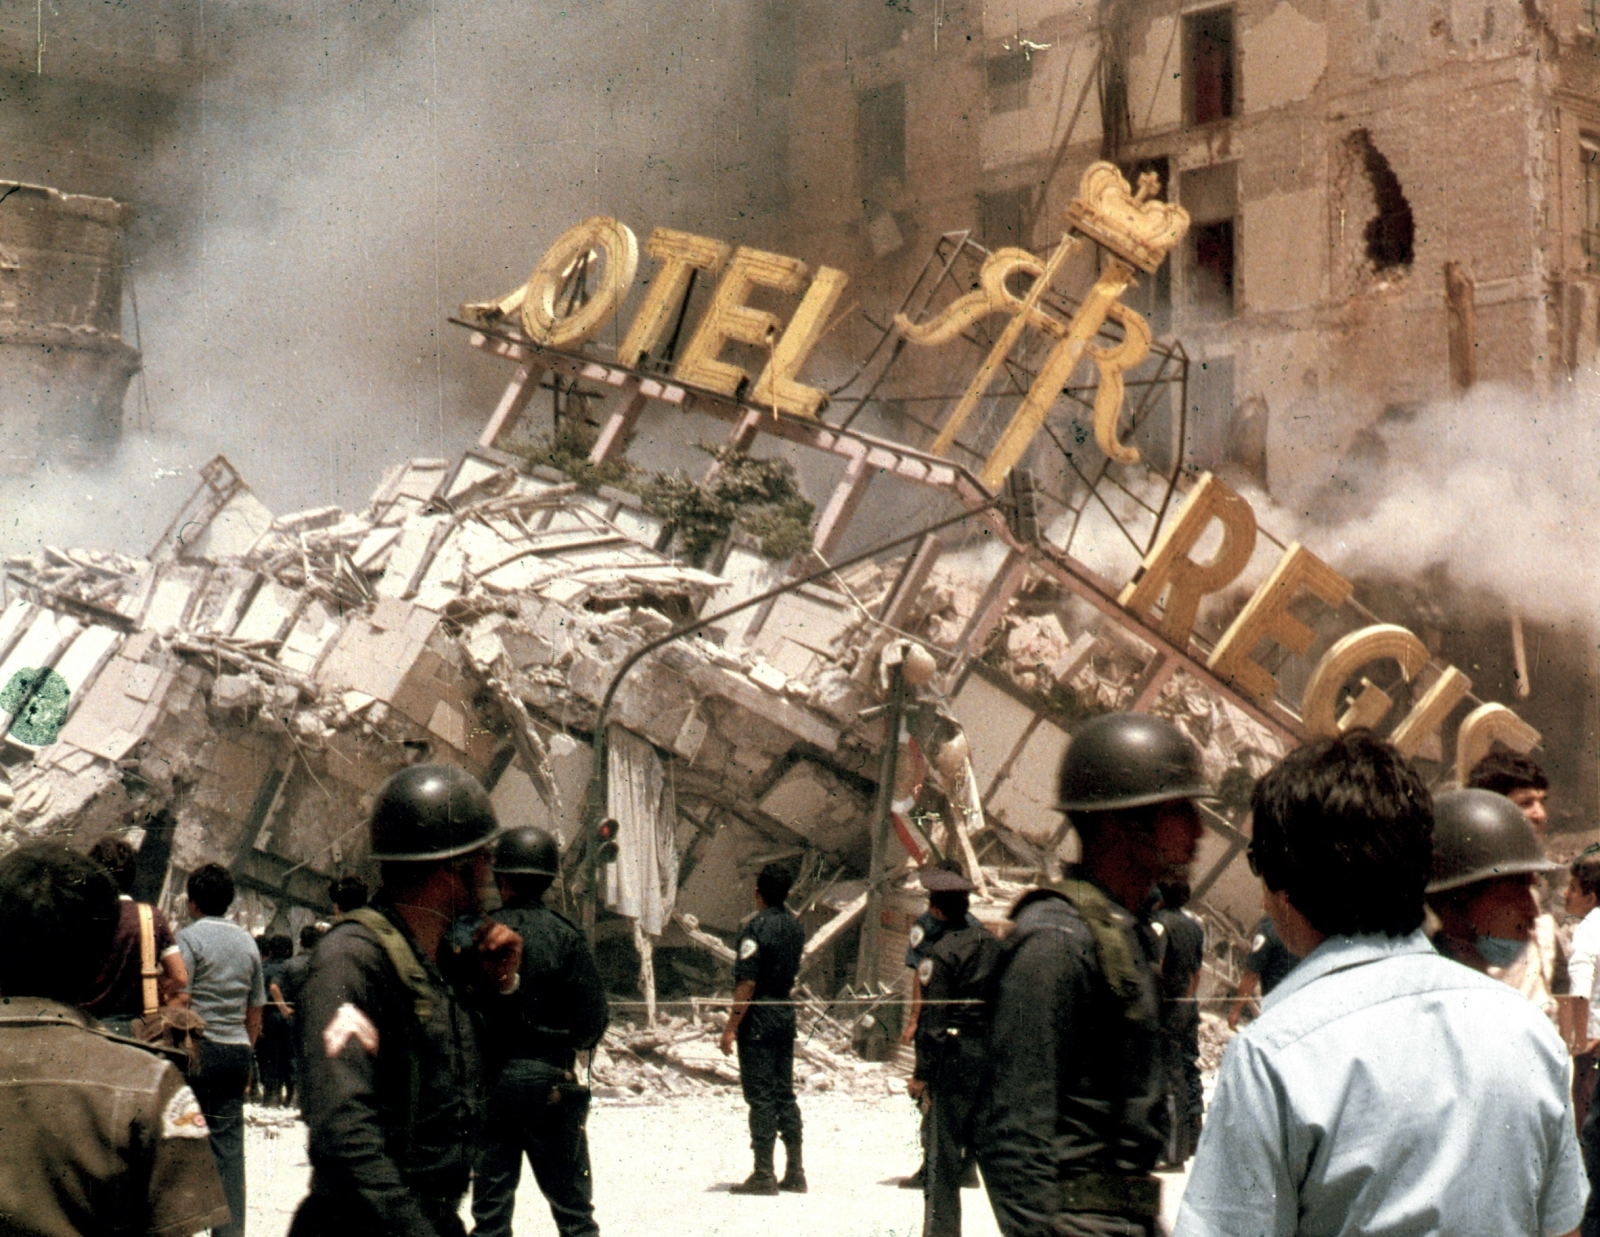 The Hotel Regis in Mexico City's Alameda Park Square collapses after the country's devastating earthquake on 19 September 1985 – leading the country to strengthen building codes and adopt emergency drills